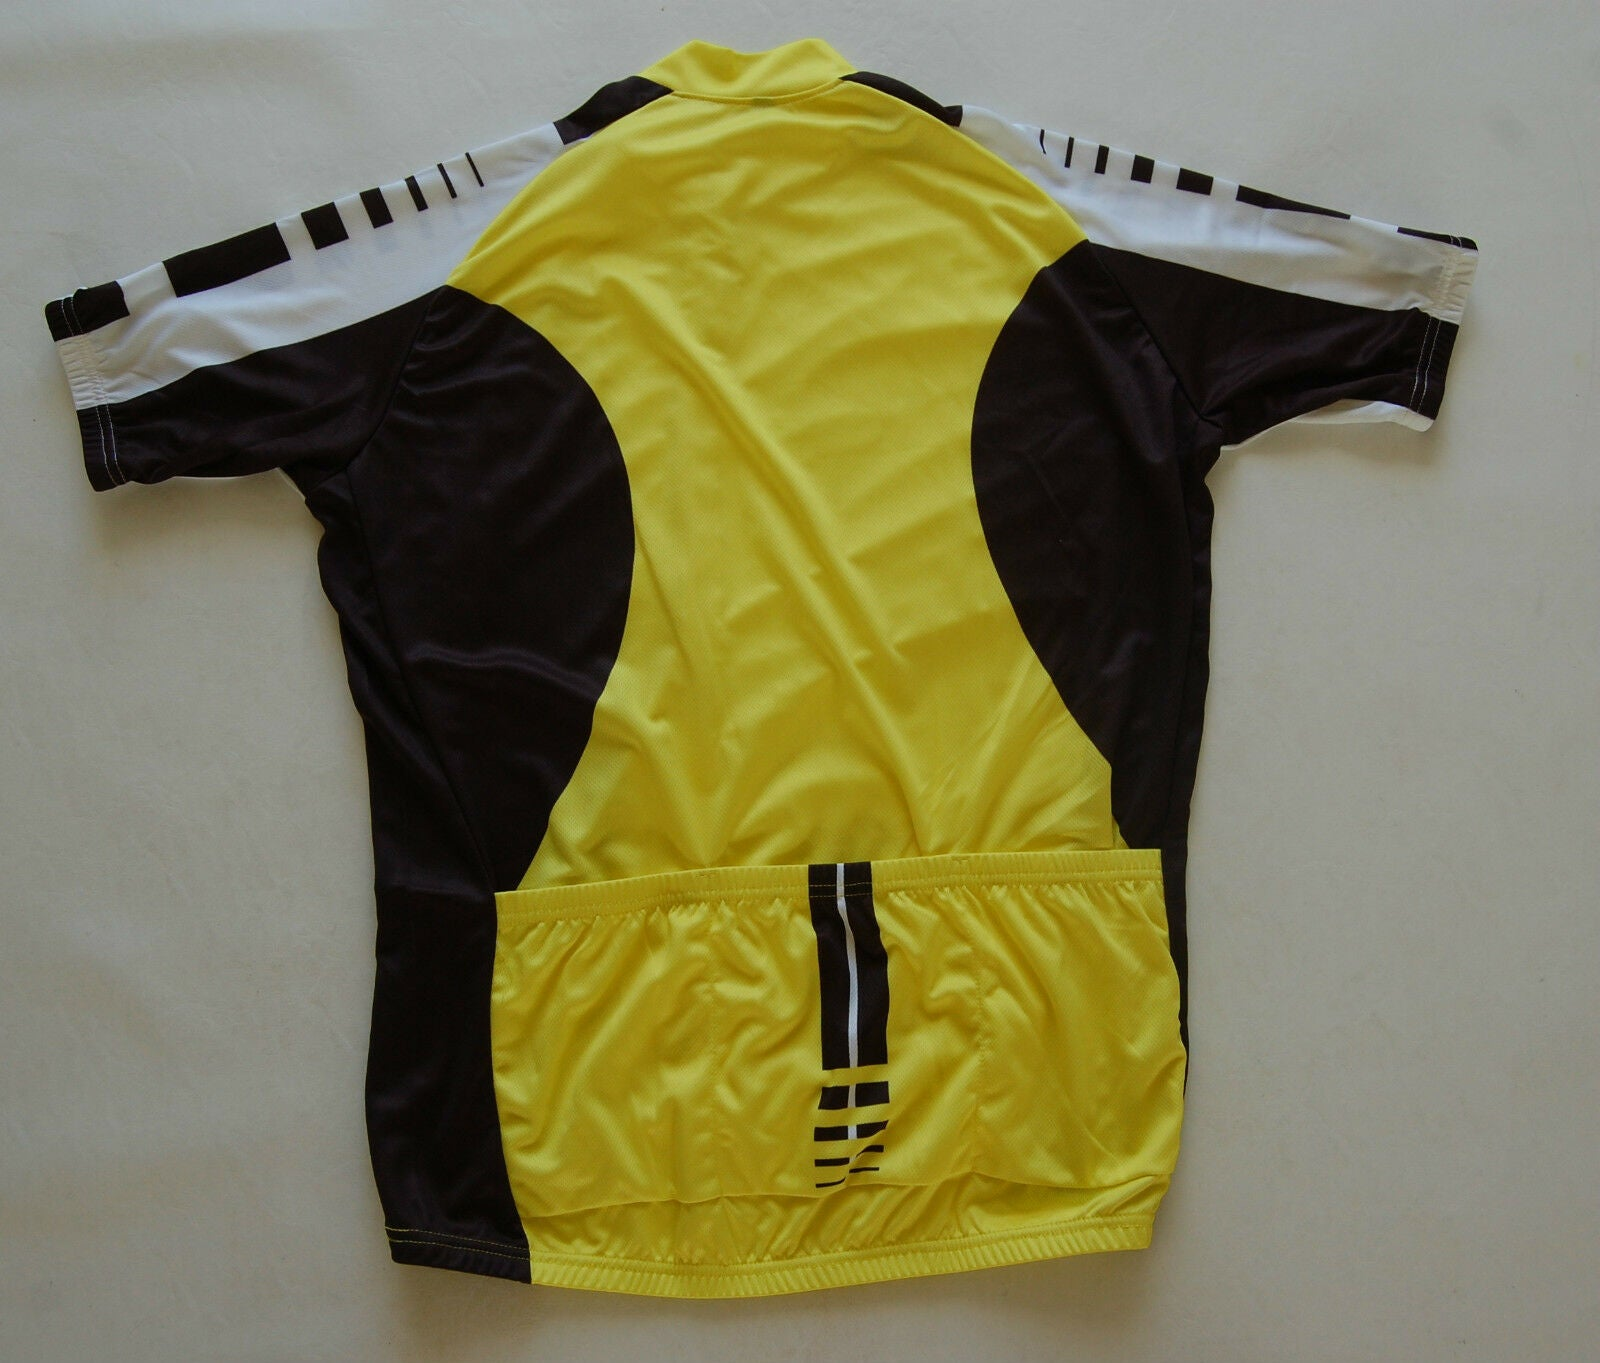 Cycling Sport Clothing Jersey Unisex (Yellow, Black & White)